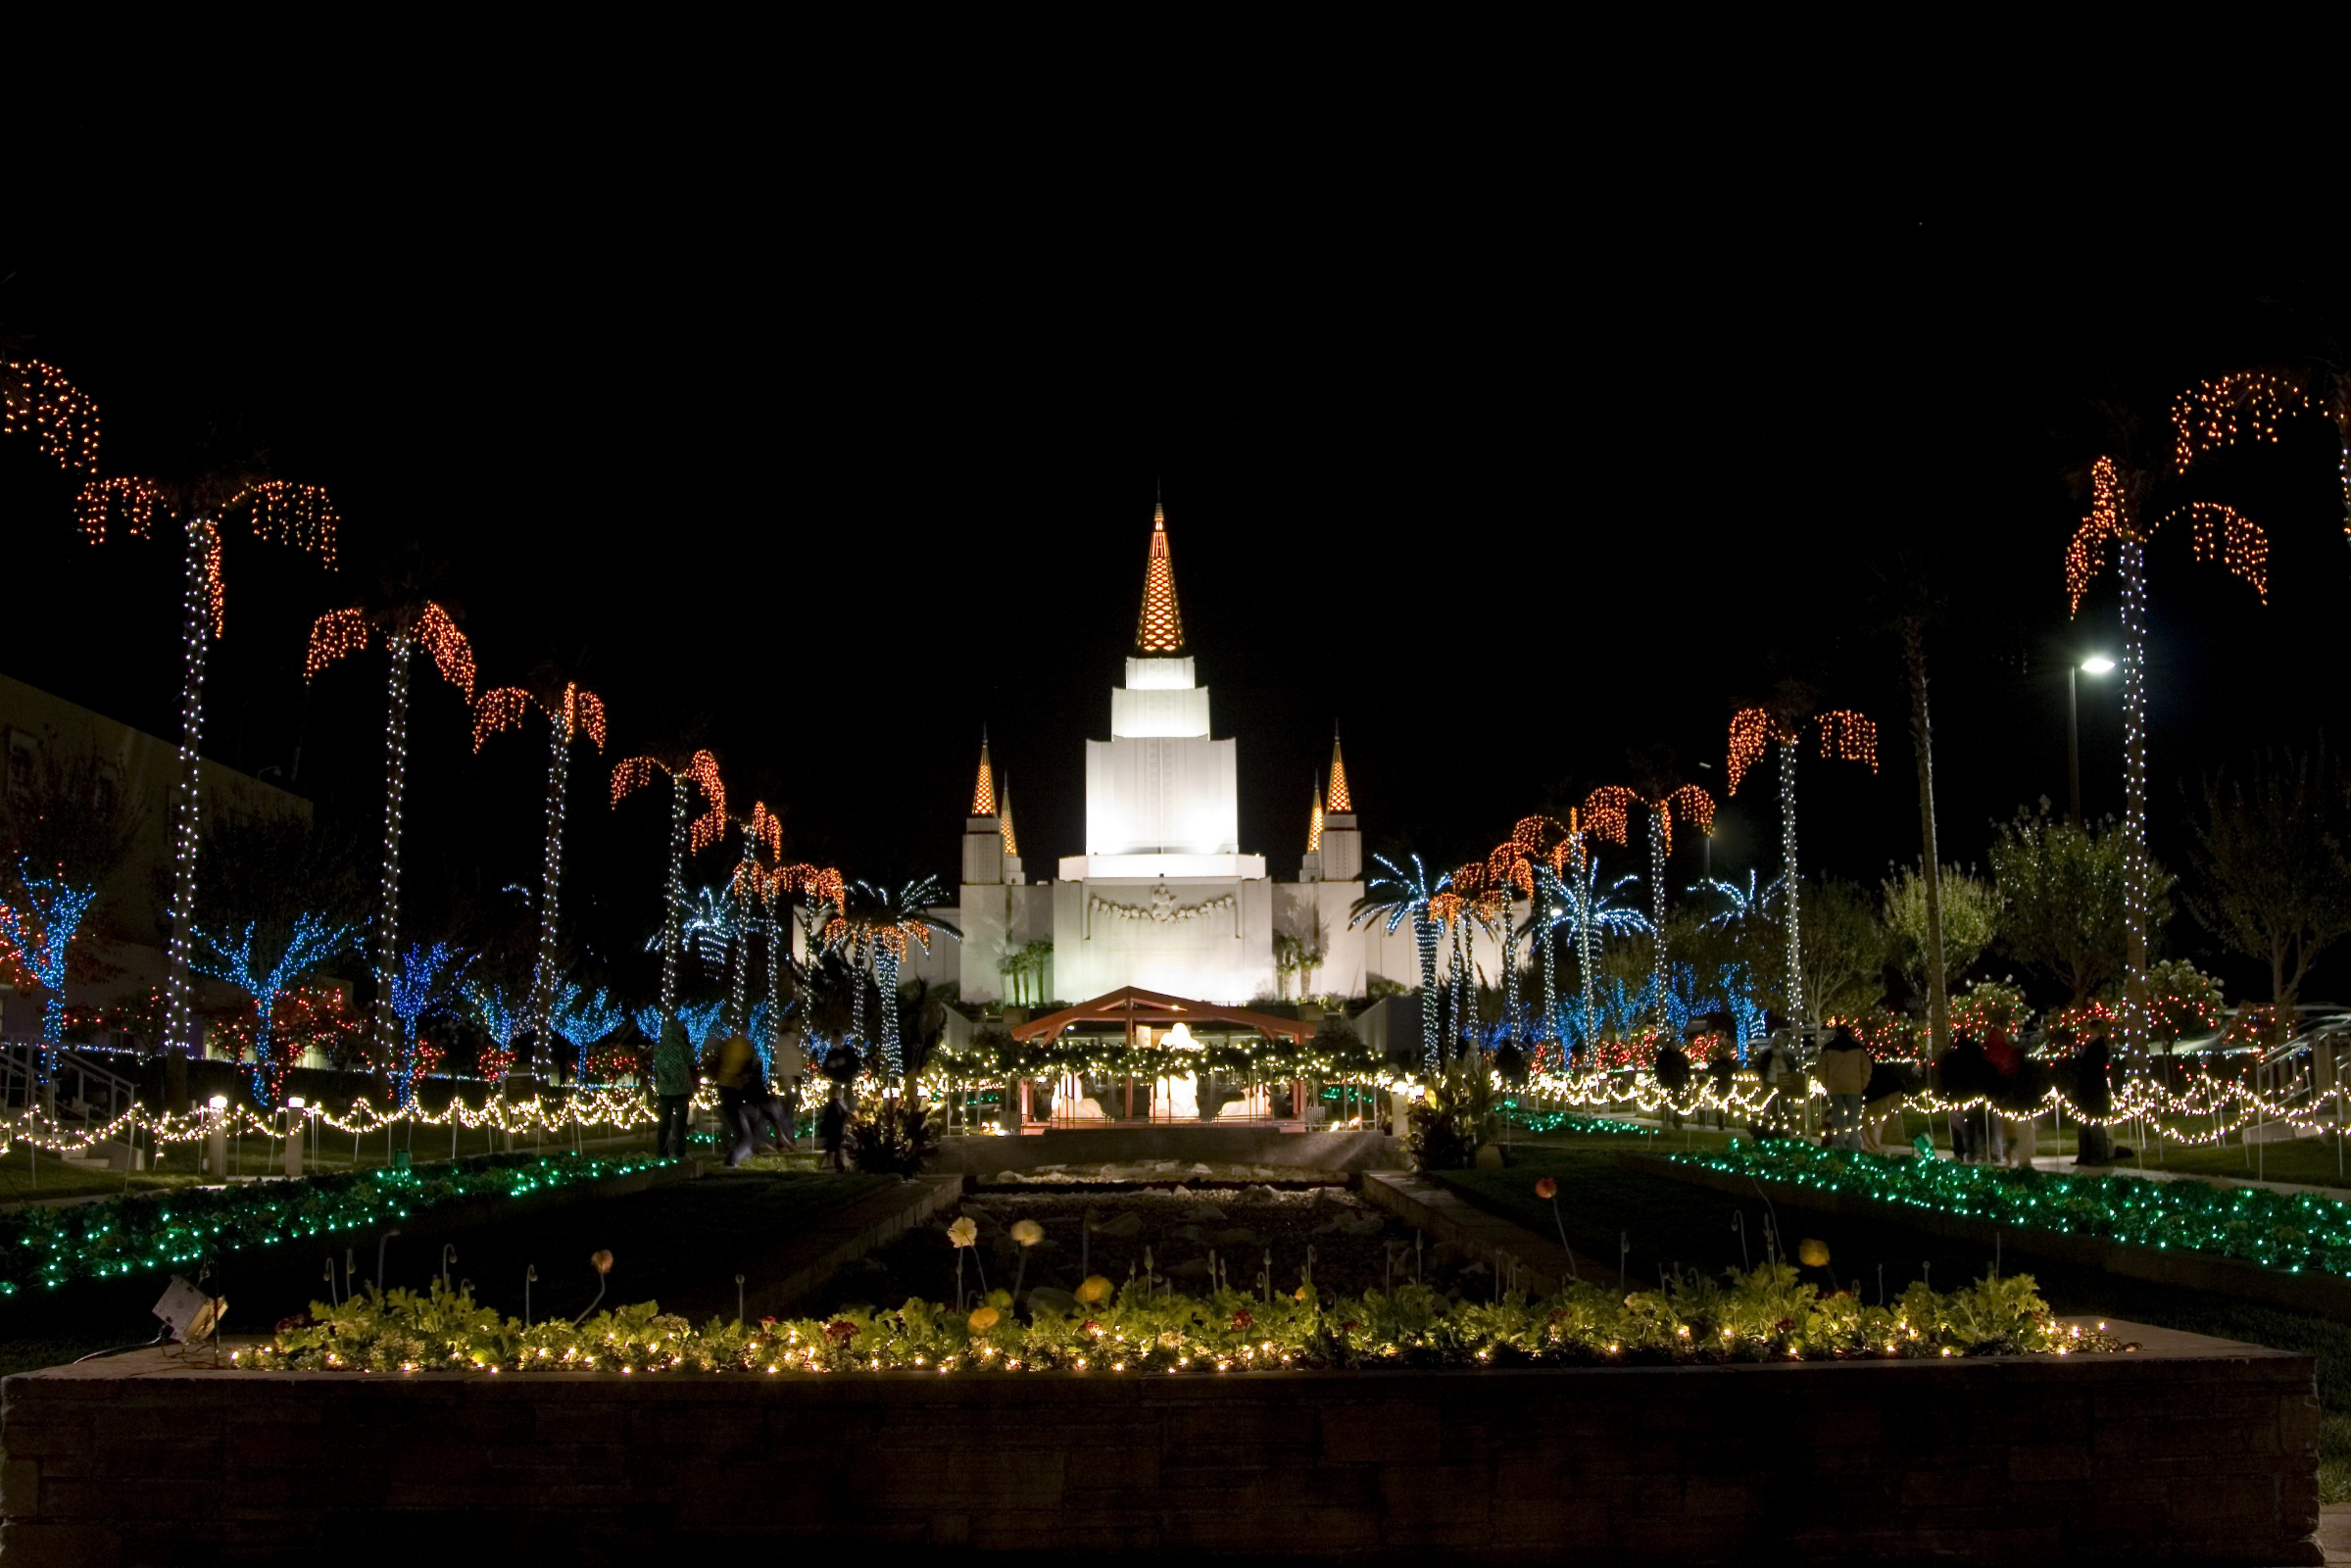 The Mormon Temple in Oakland has its Christmas lights up. Definitely ...